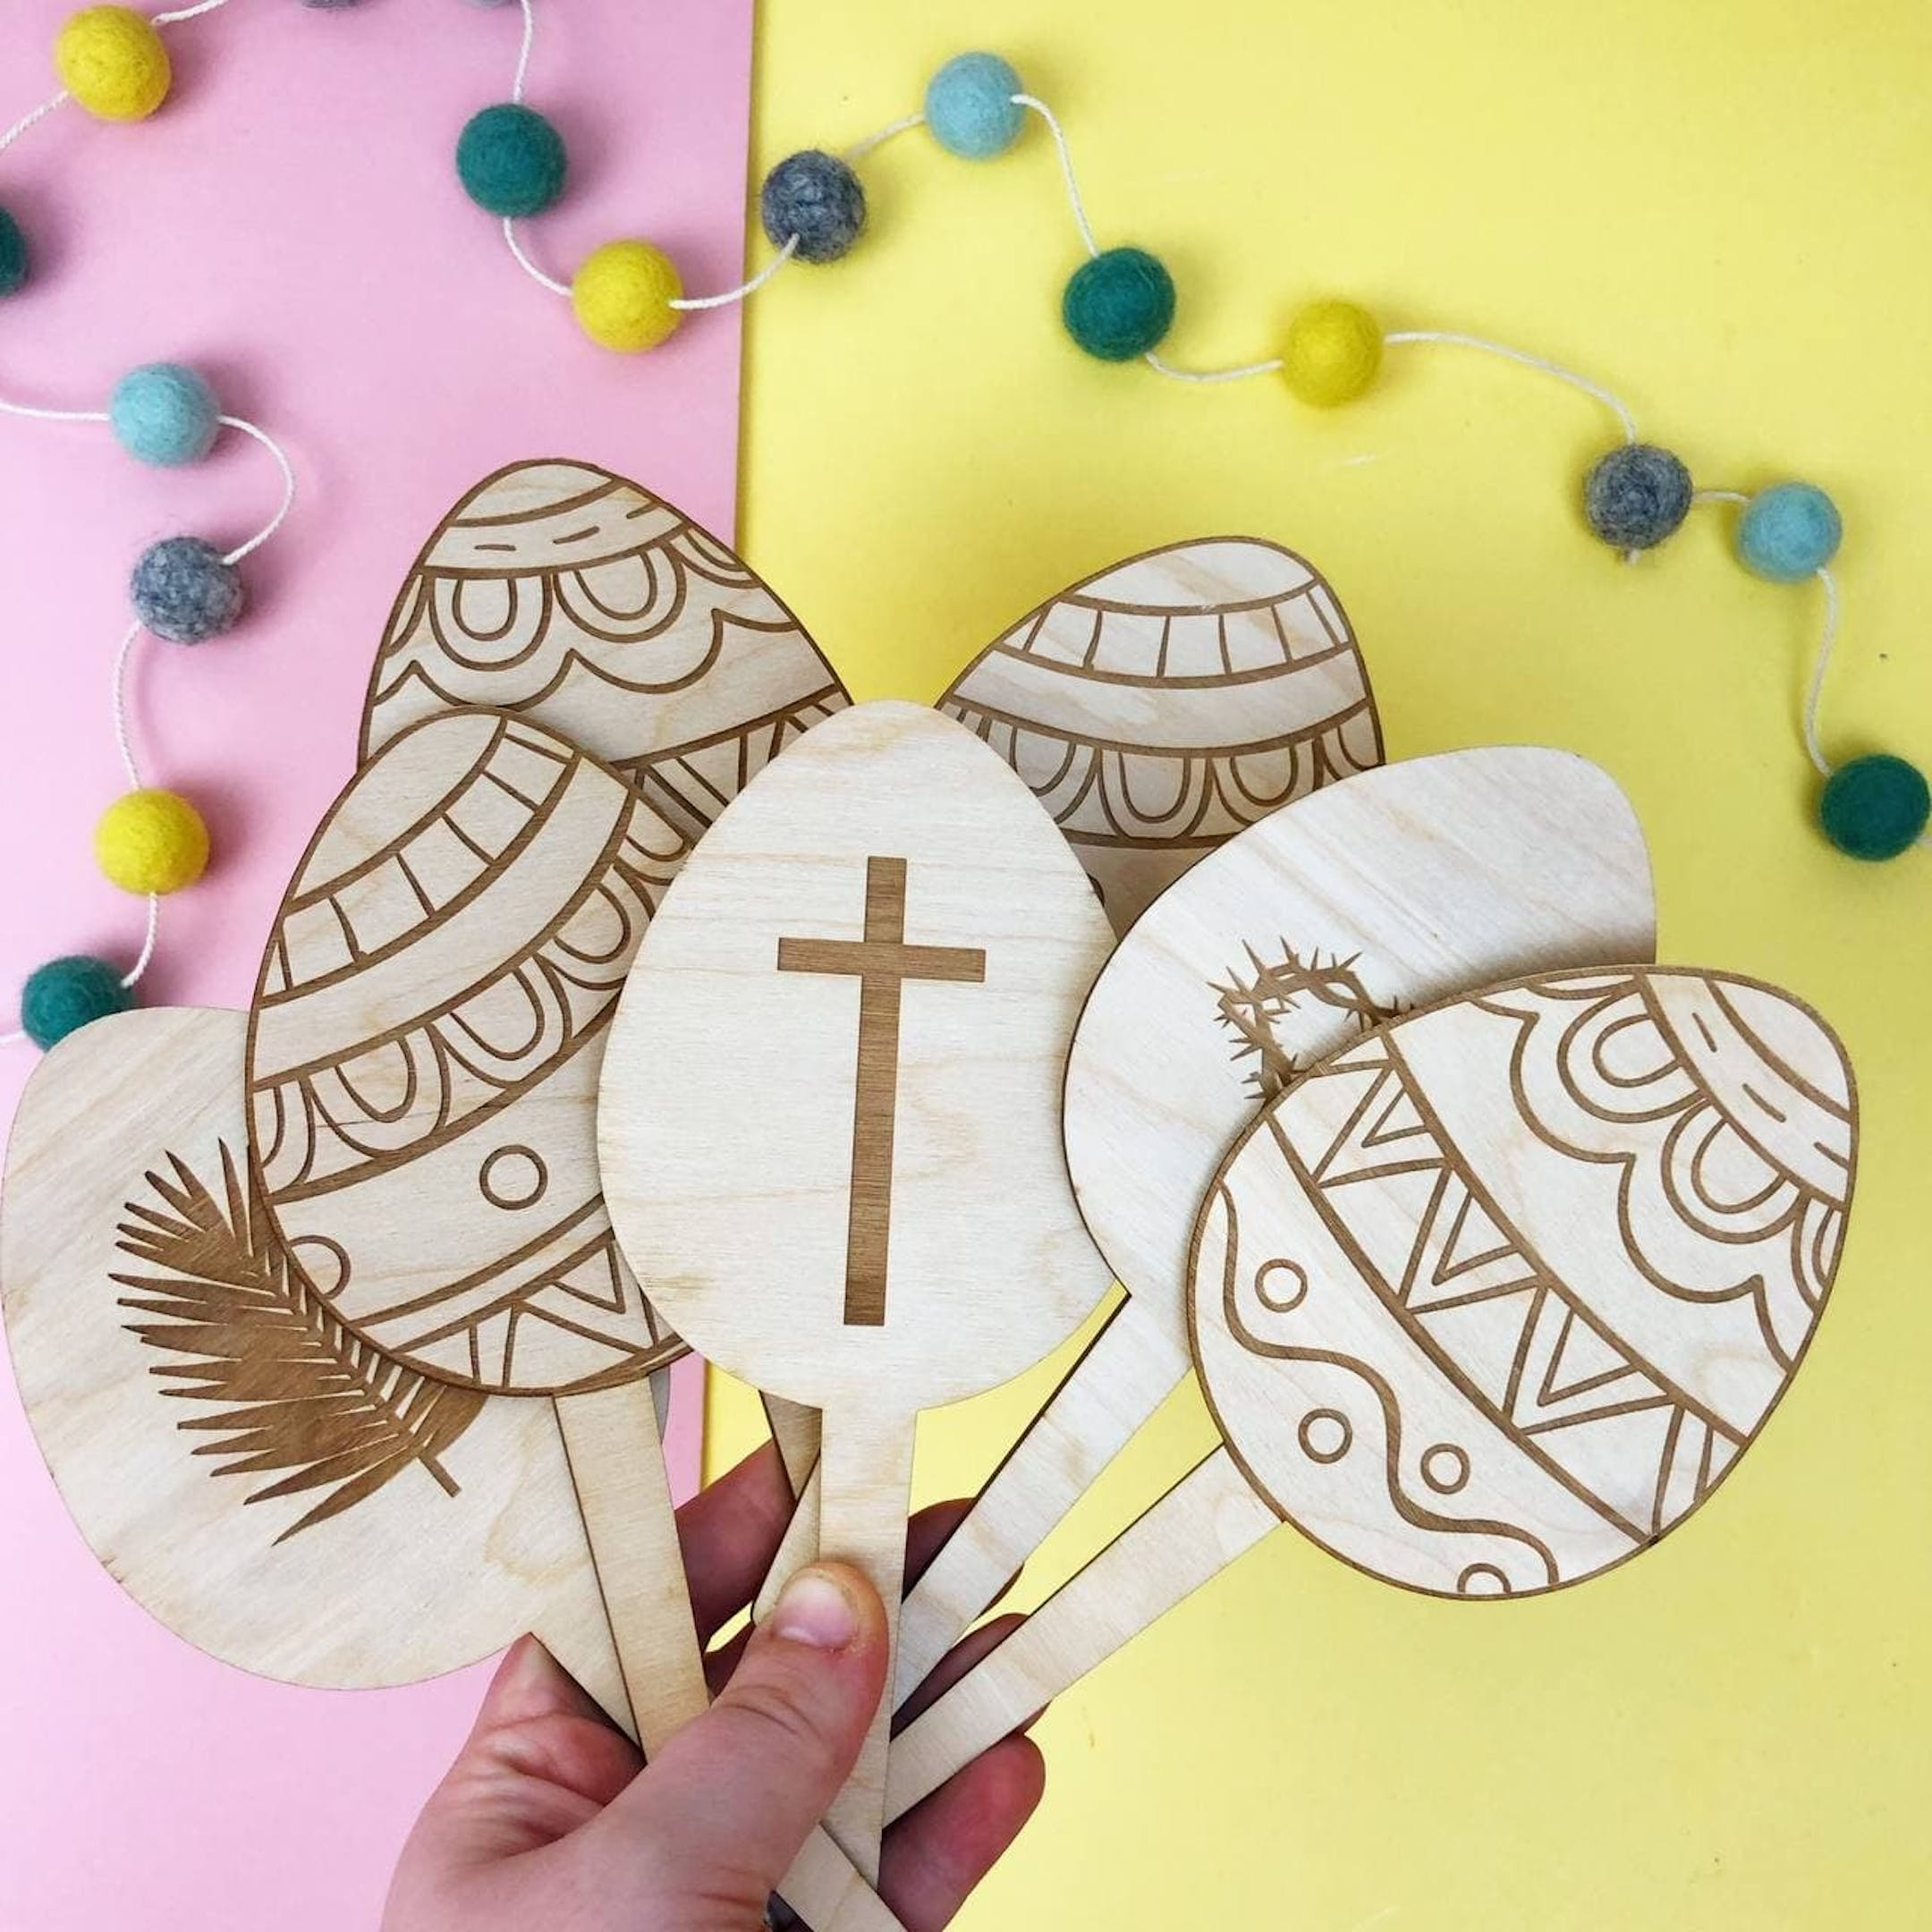 Wooden Egg Christian Easter Decorations by Birch and Tides at Cheerfully Given